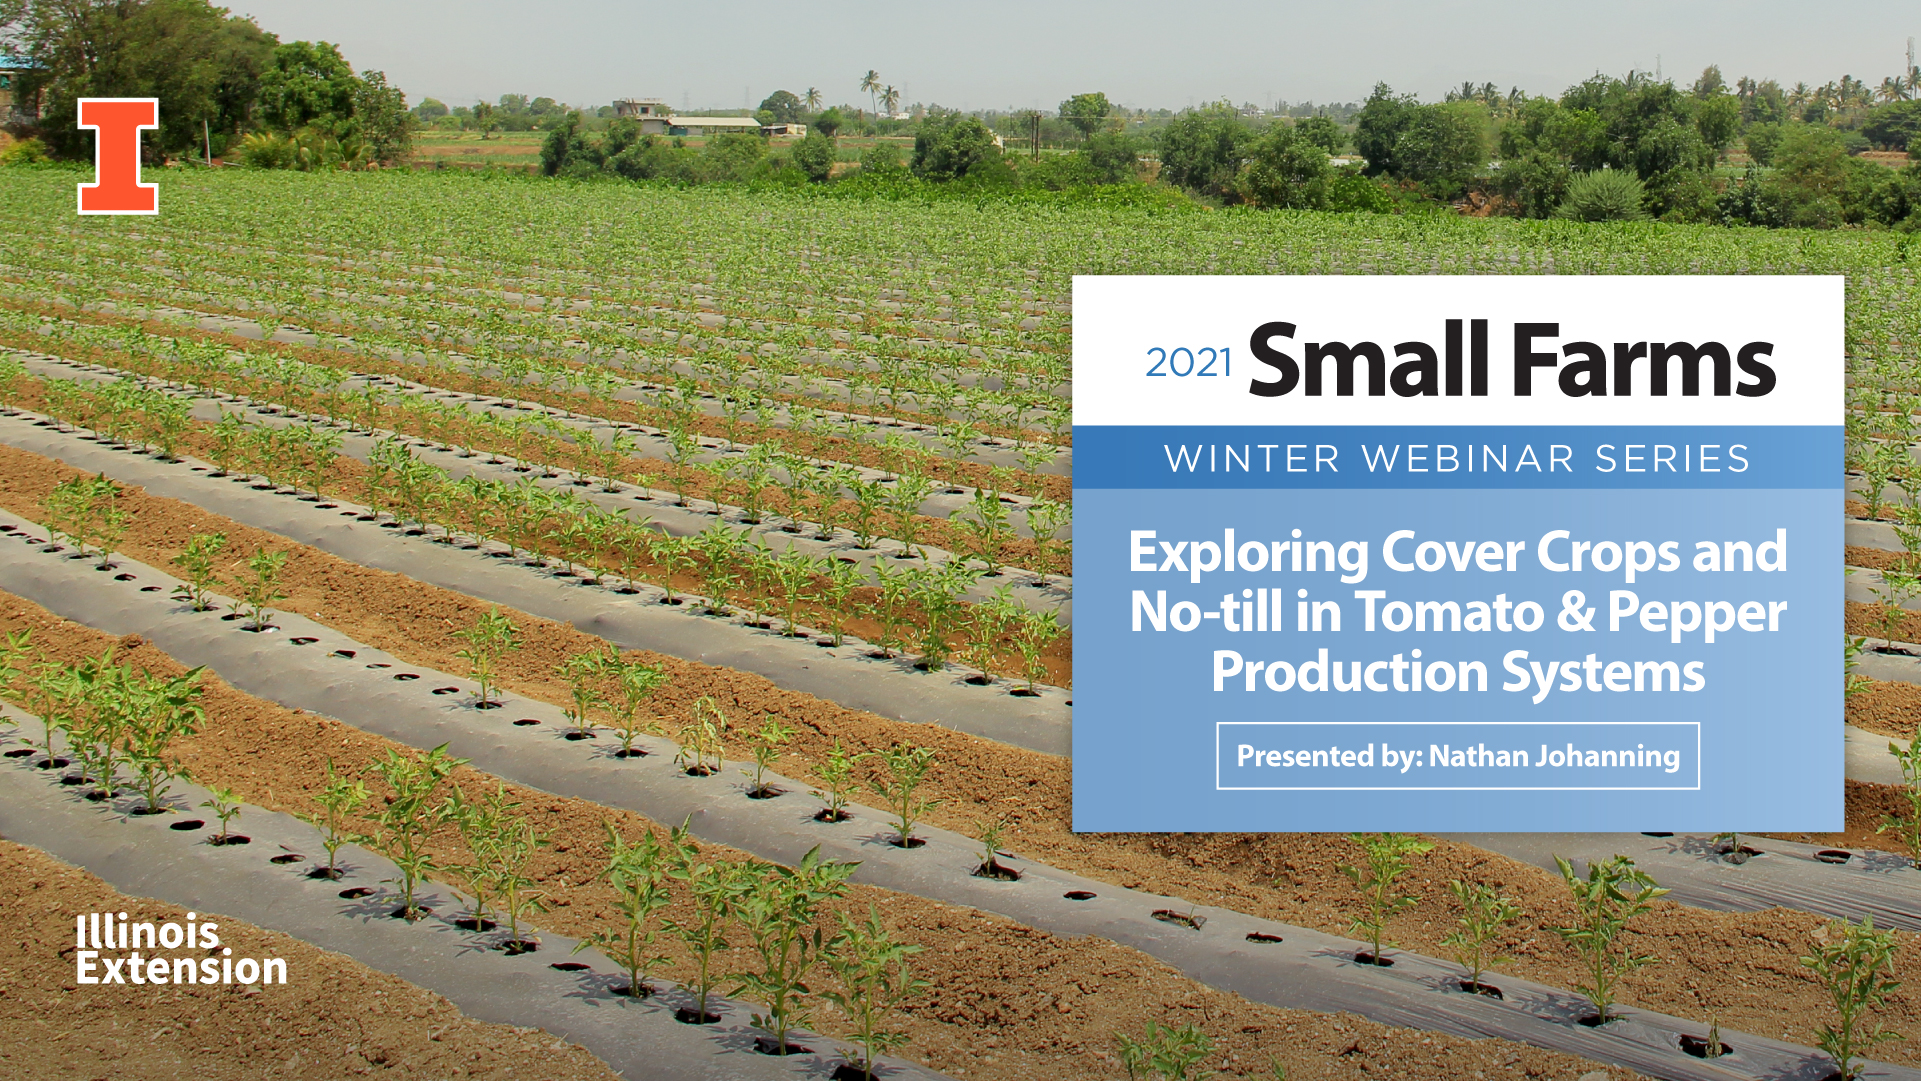 Exploring Cover Crops and No-till in Tomato & Pepper Production Systems